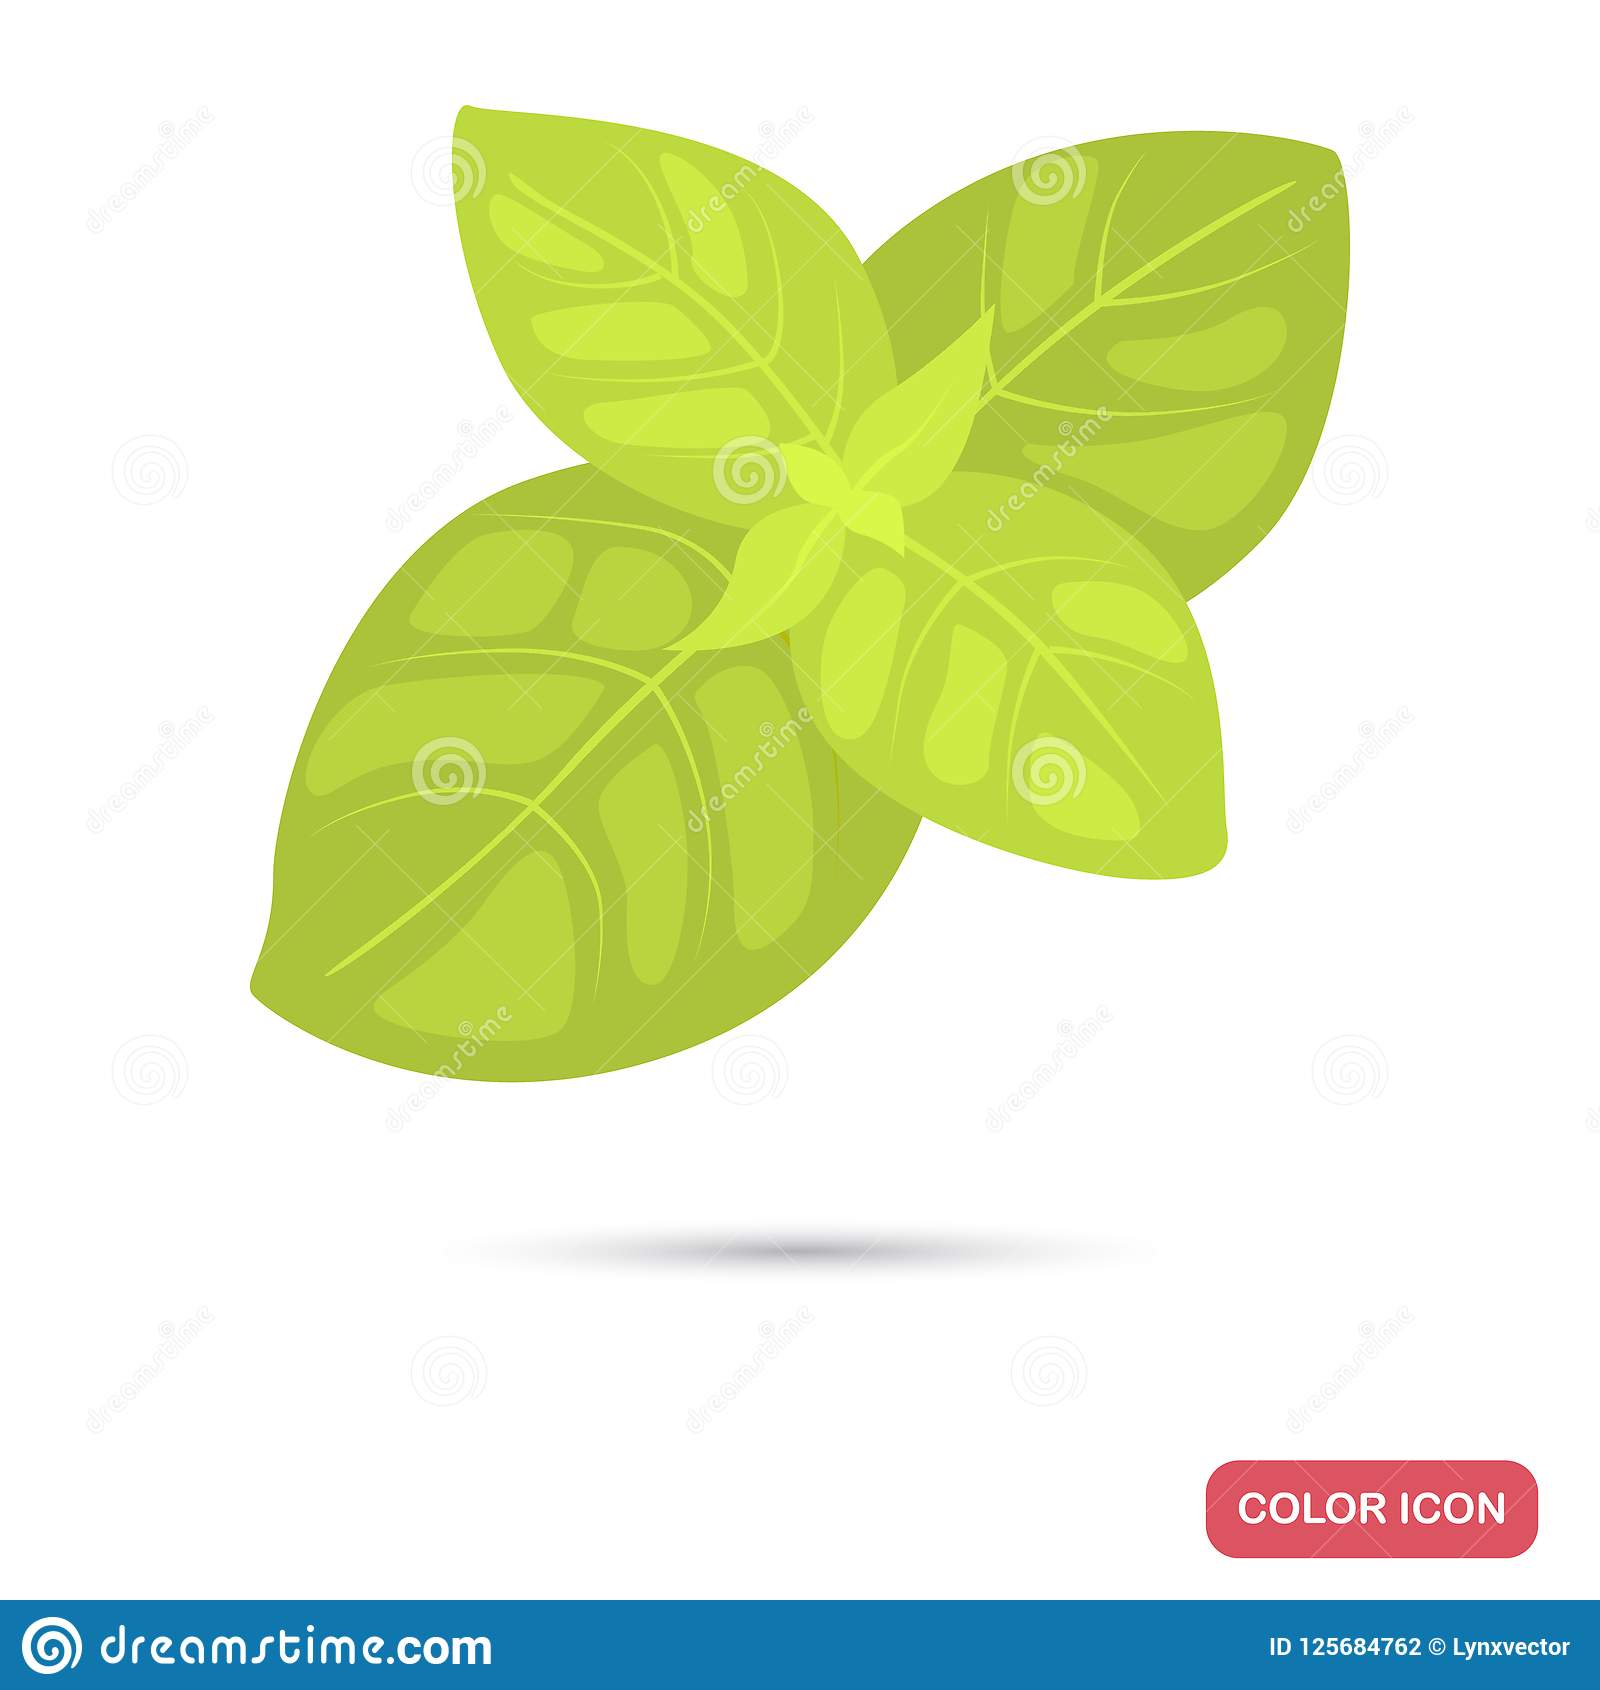 Basil Leaves Spice Color Flat Icon Stock Vector Illustration Of